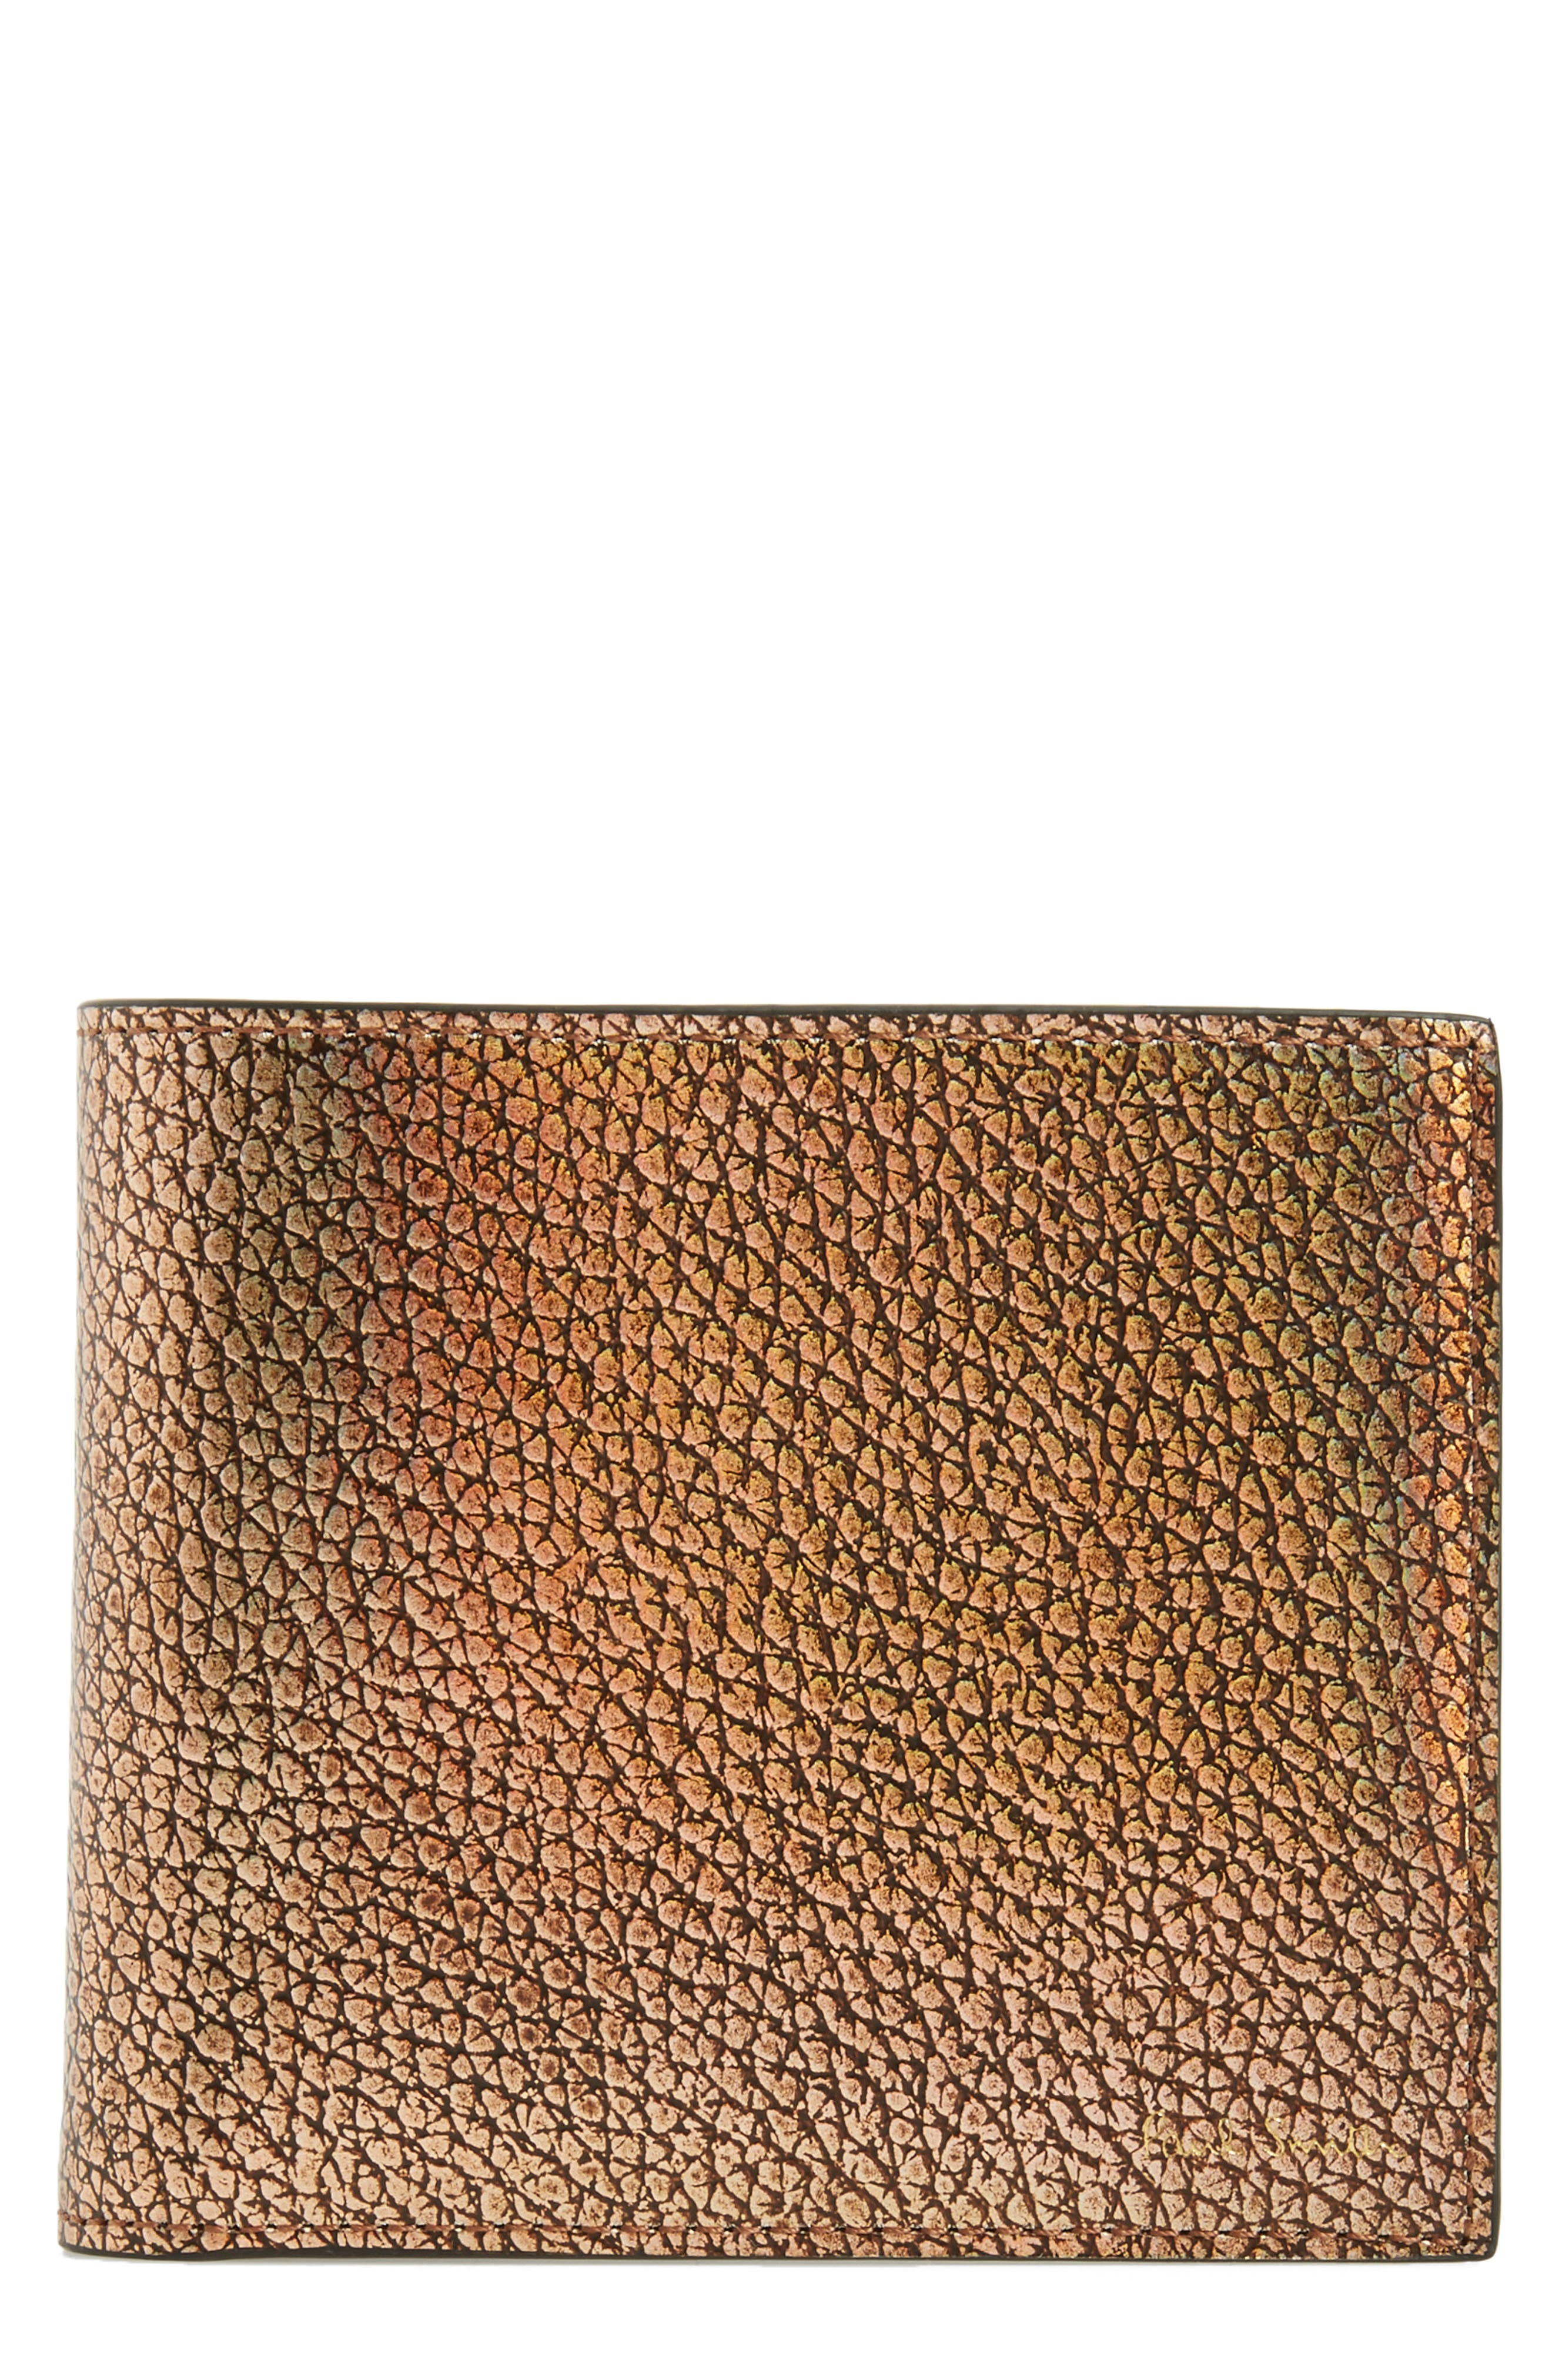 Main Image - Paul Smith Metallic Leather Wallet